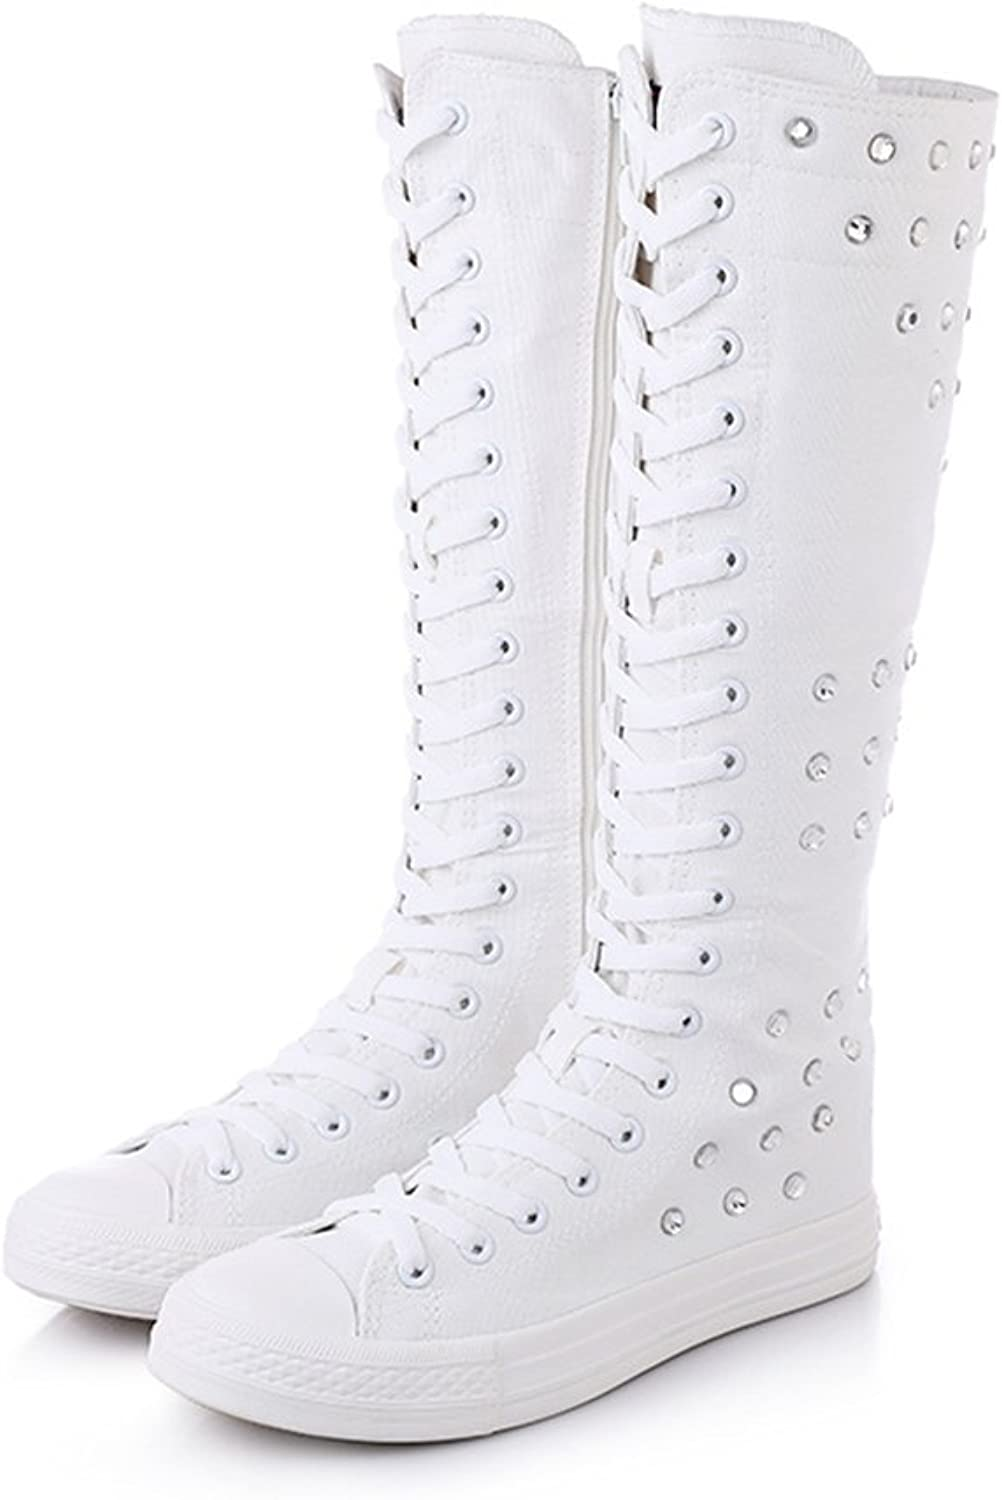 Xiaoyang Girls Women Fashion Knee High Lace-up Canvas Boots Pure White Black Zip Dance Boots